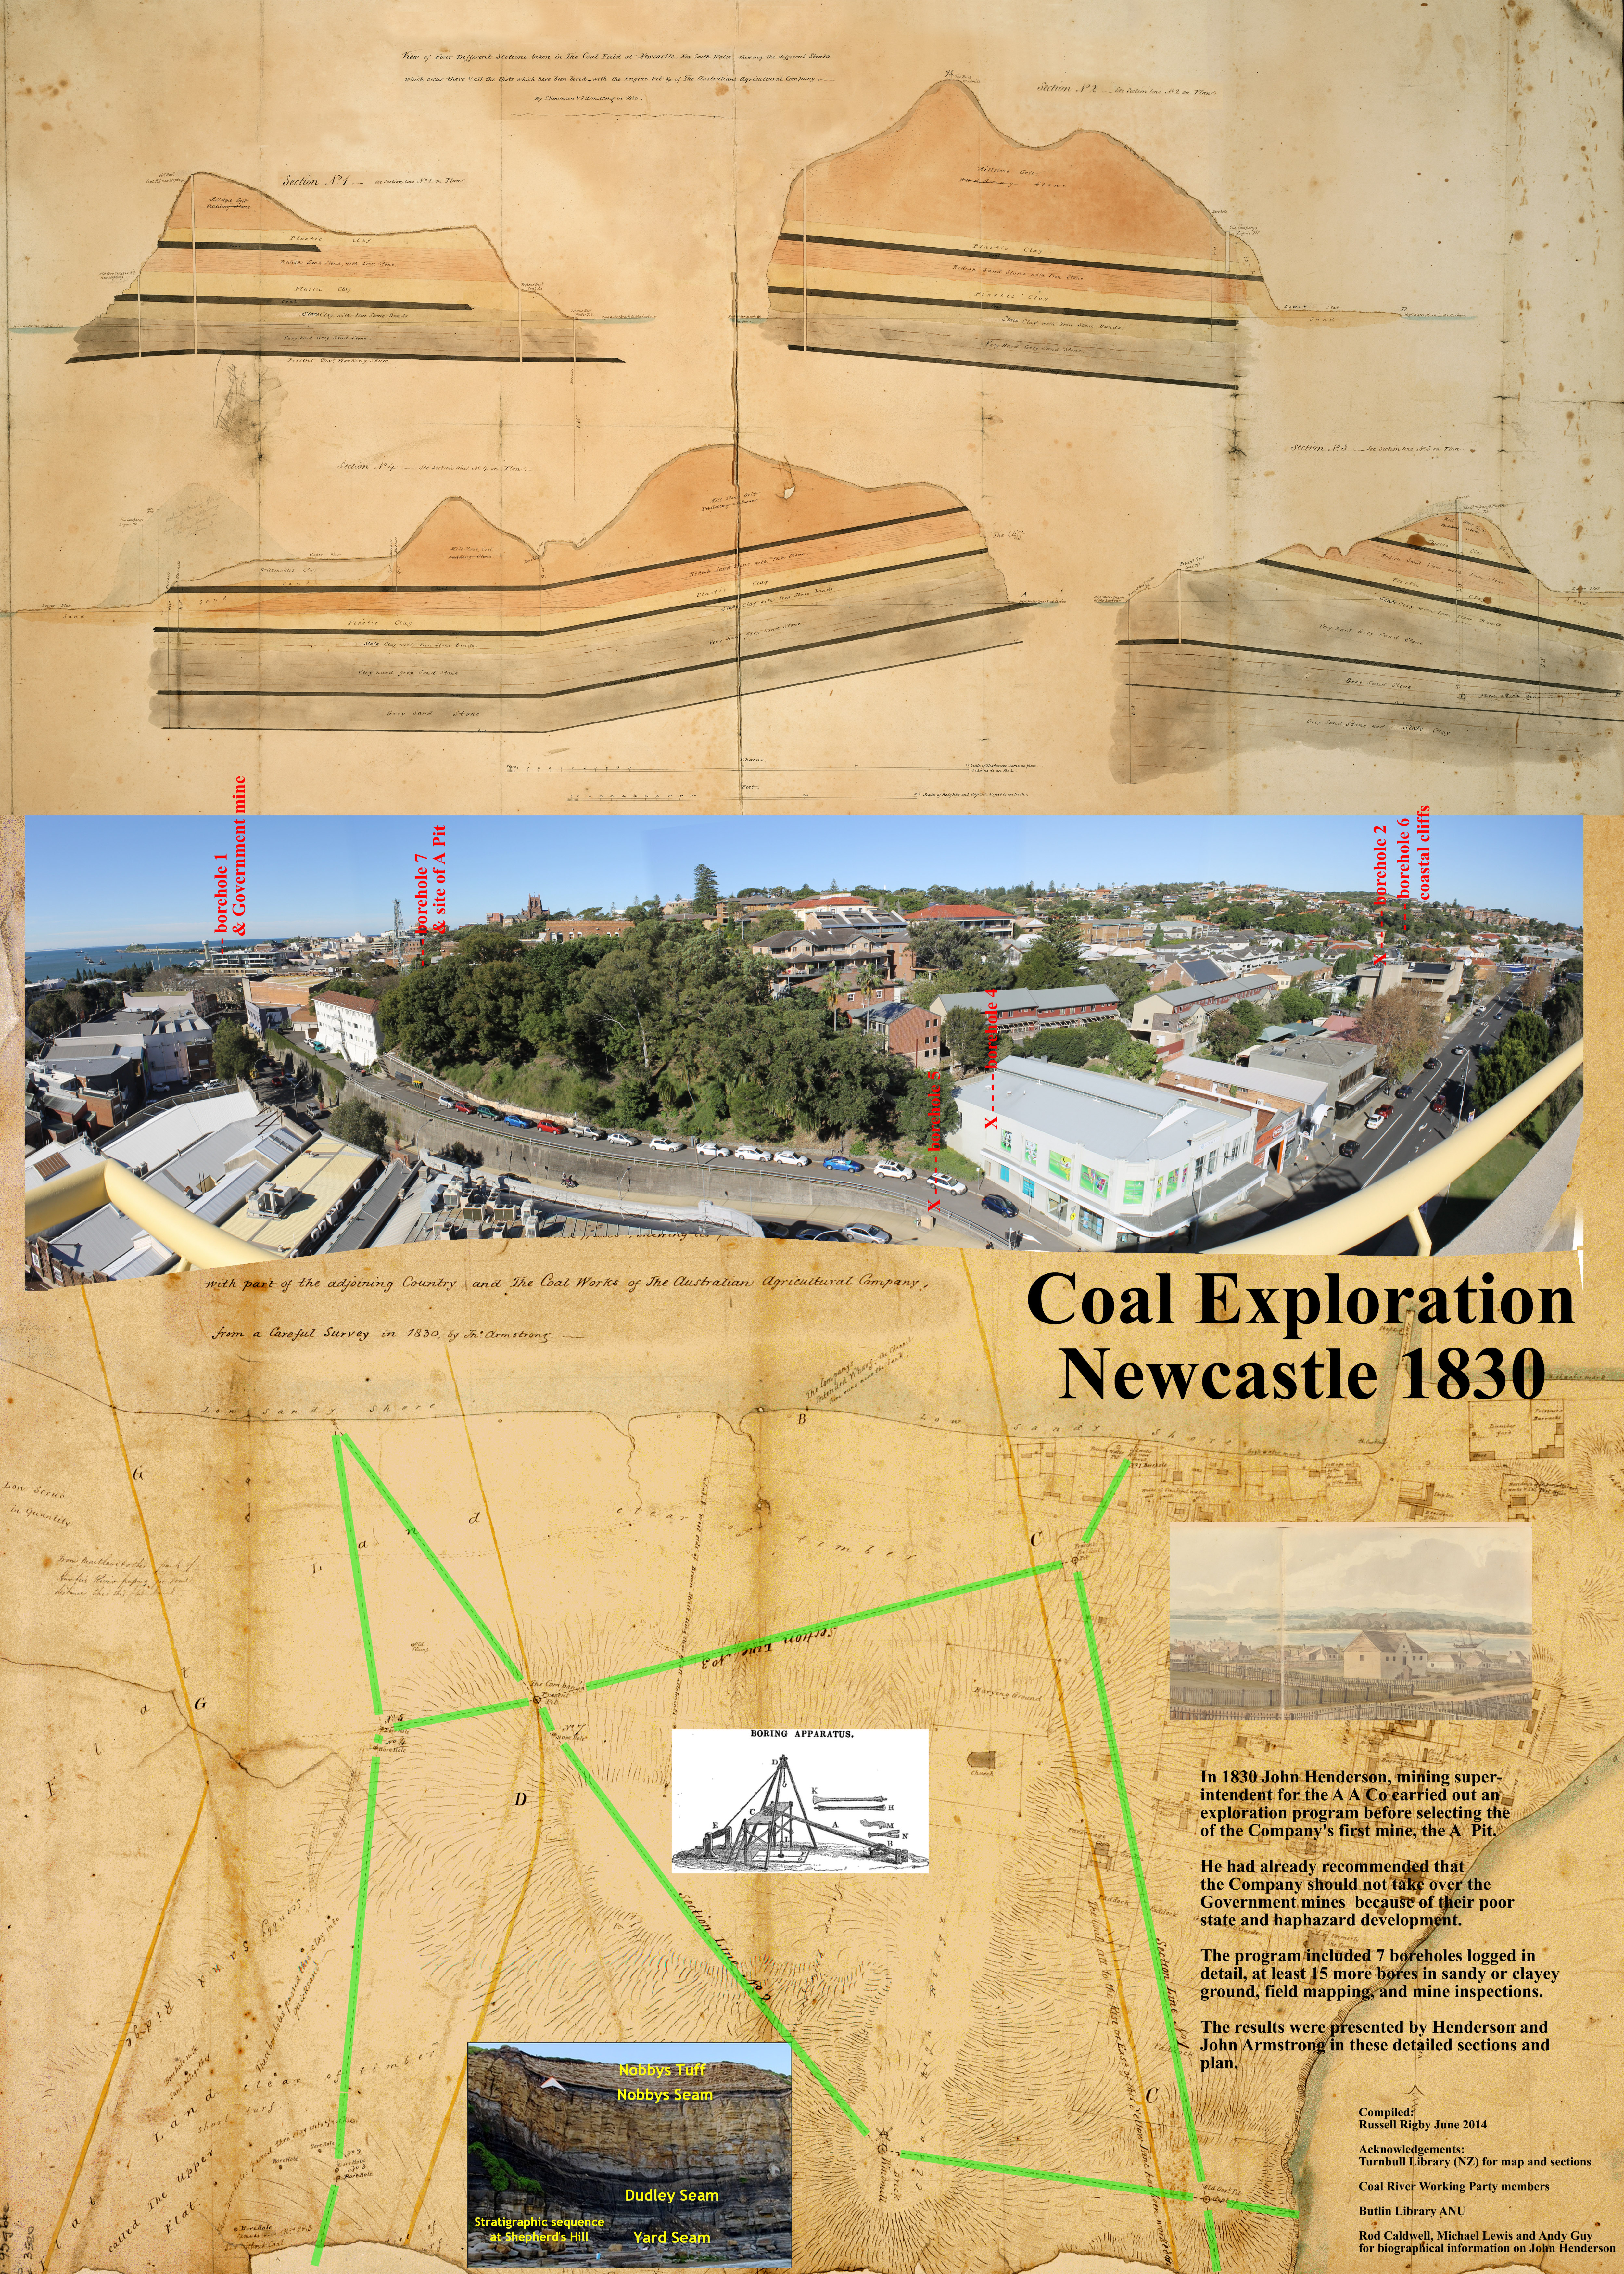 Coal Explorations Newcastle 1830 Compiled by Russell Rigby 2014